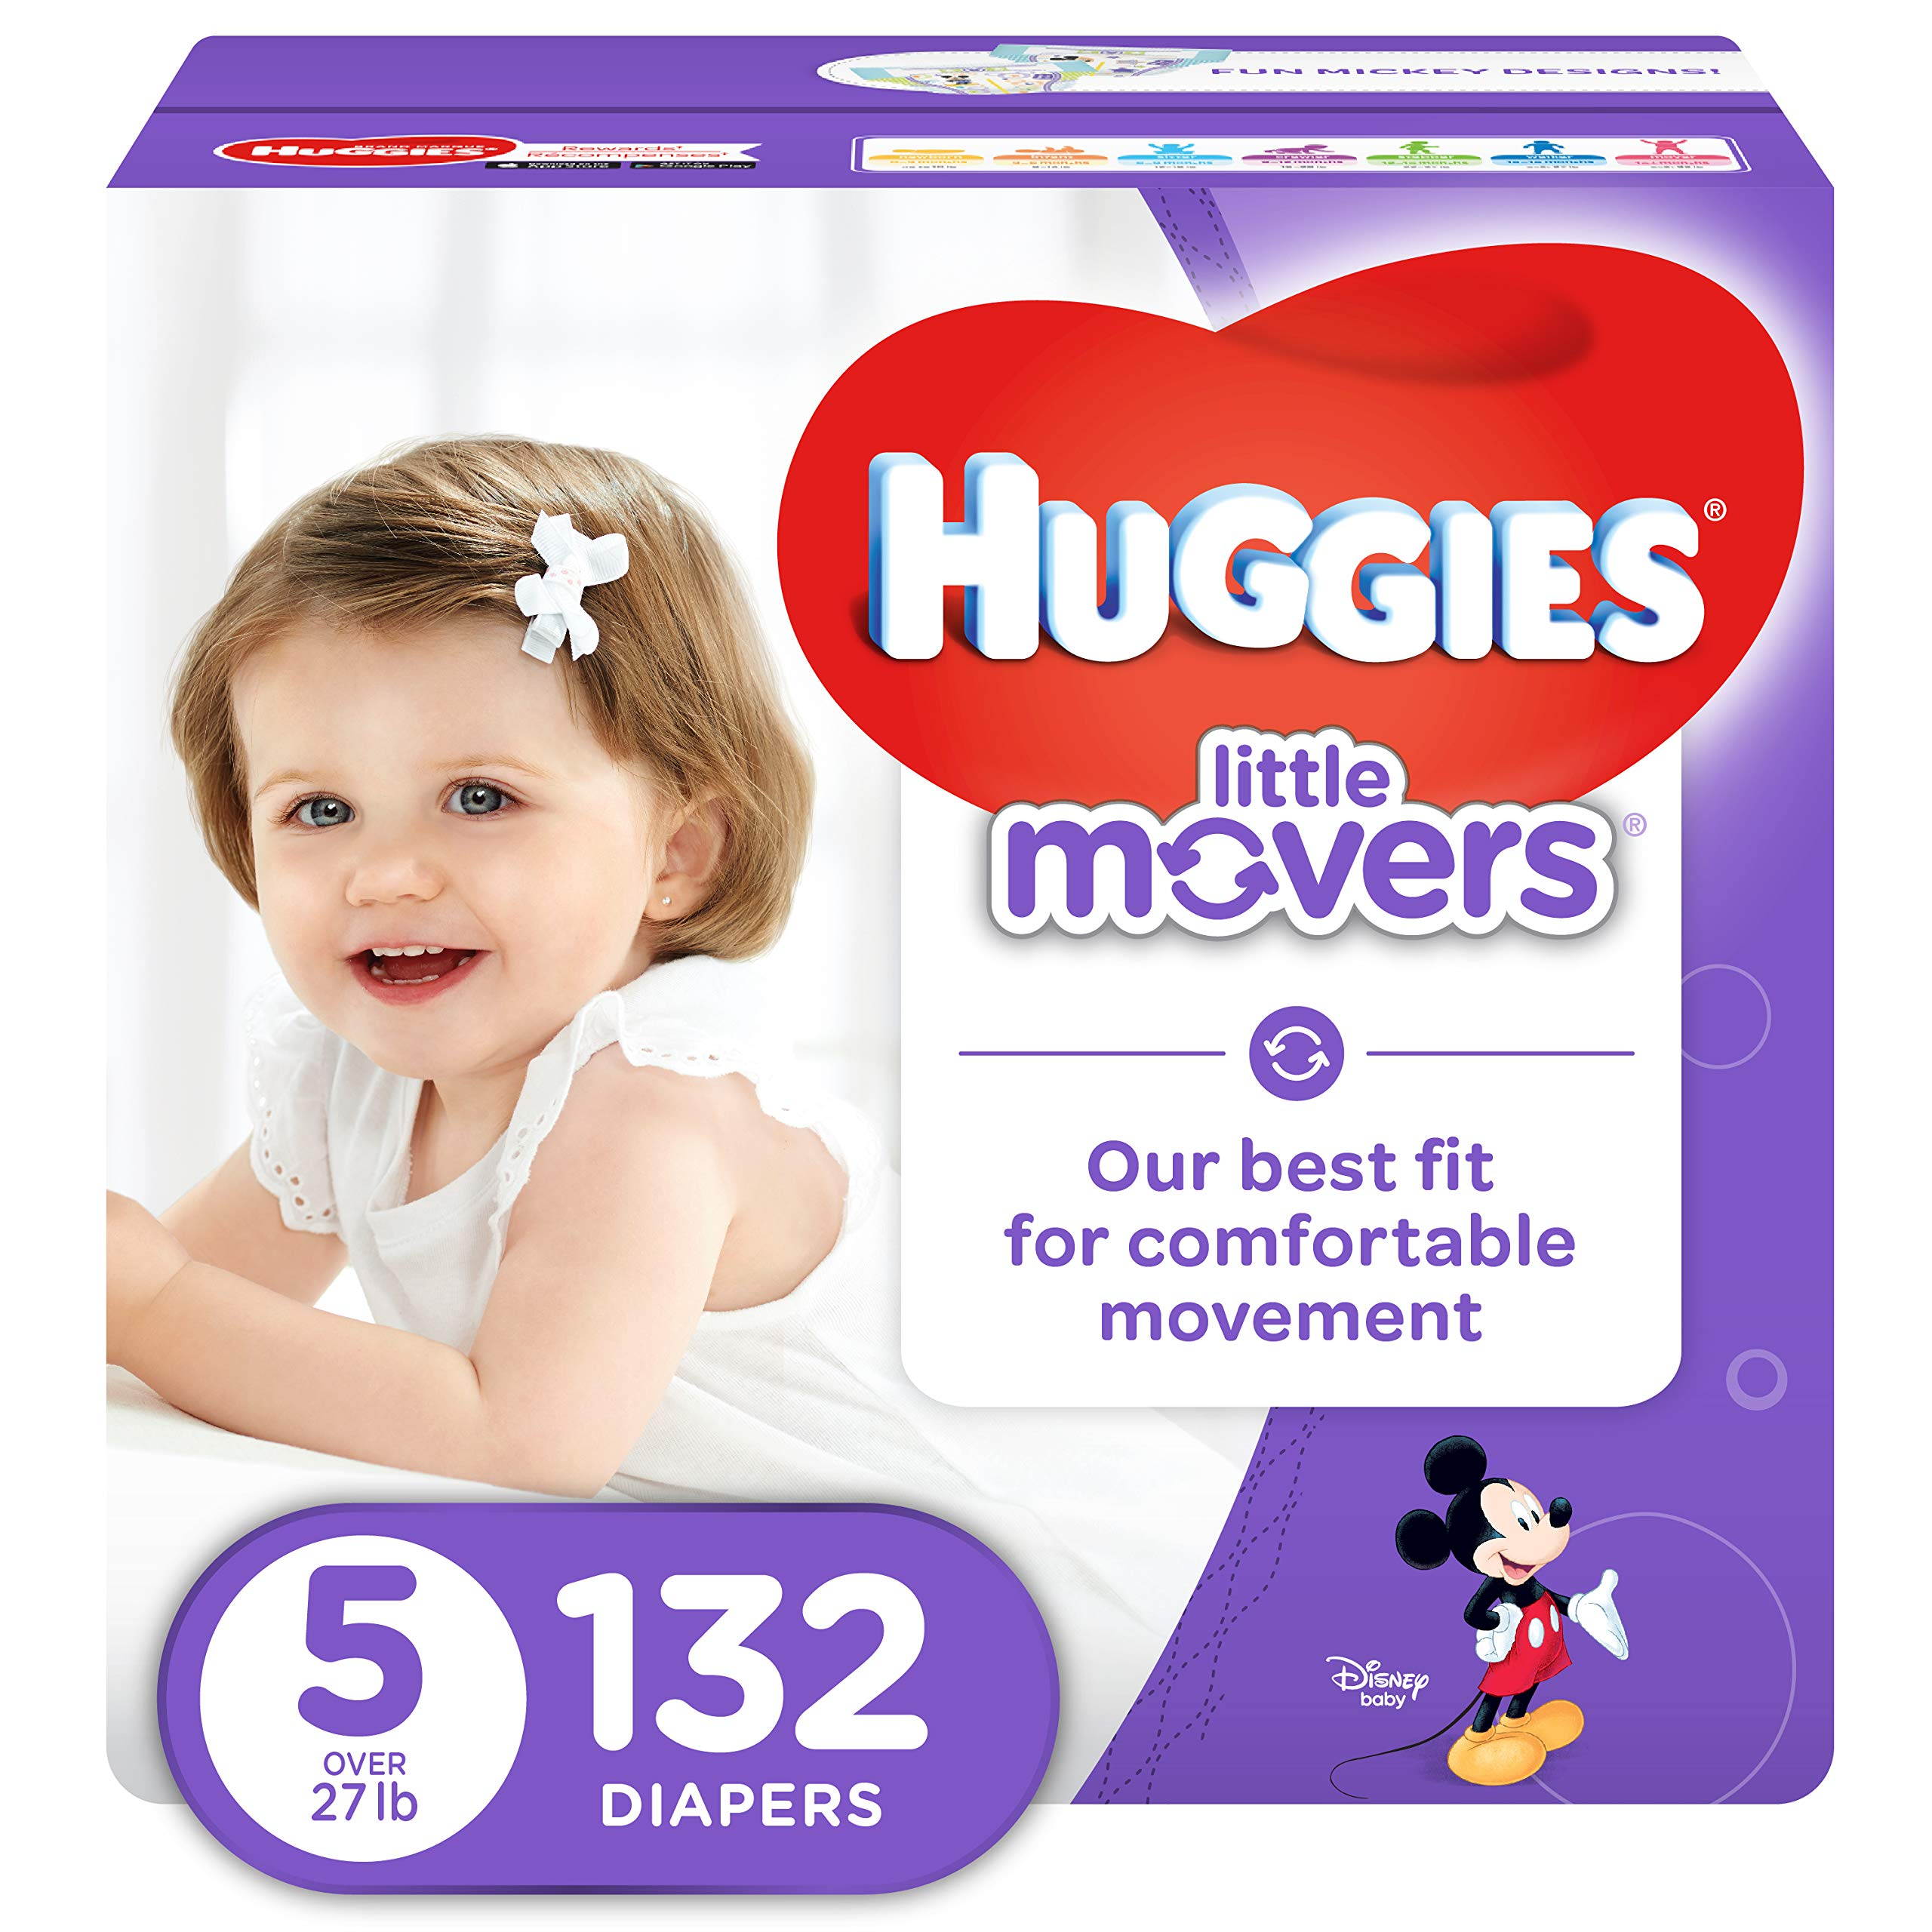 HUGGIES LITTLE MOVERS Active Baby Diapers, Size 5 (fits 27+ lb.), 132 Ct, ECONOMY PLUS (Packaging May Vary) by HUGGIES